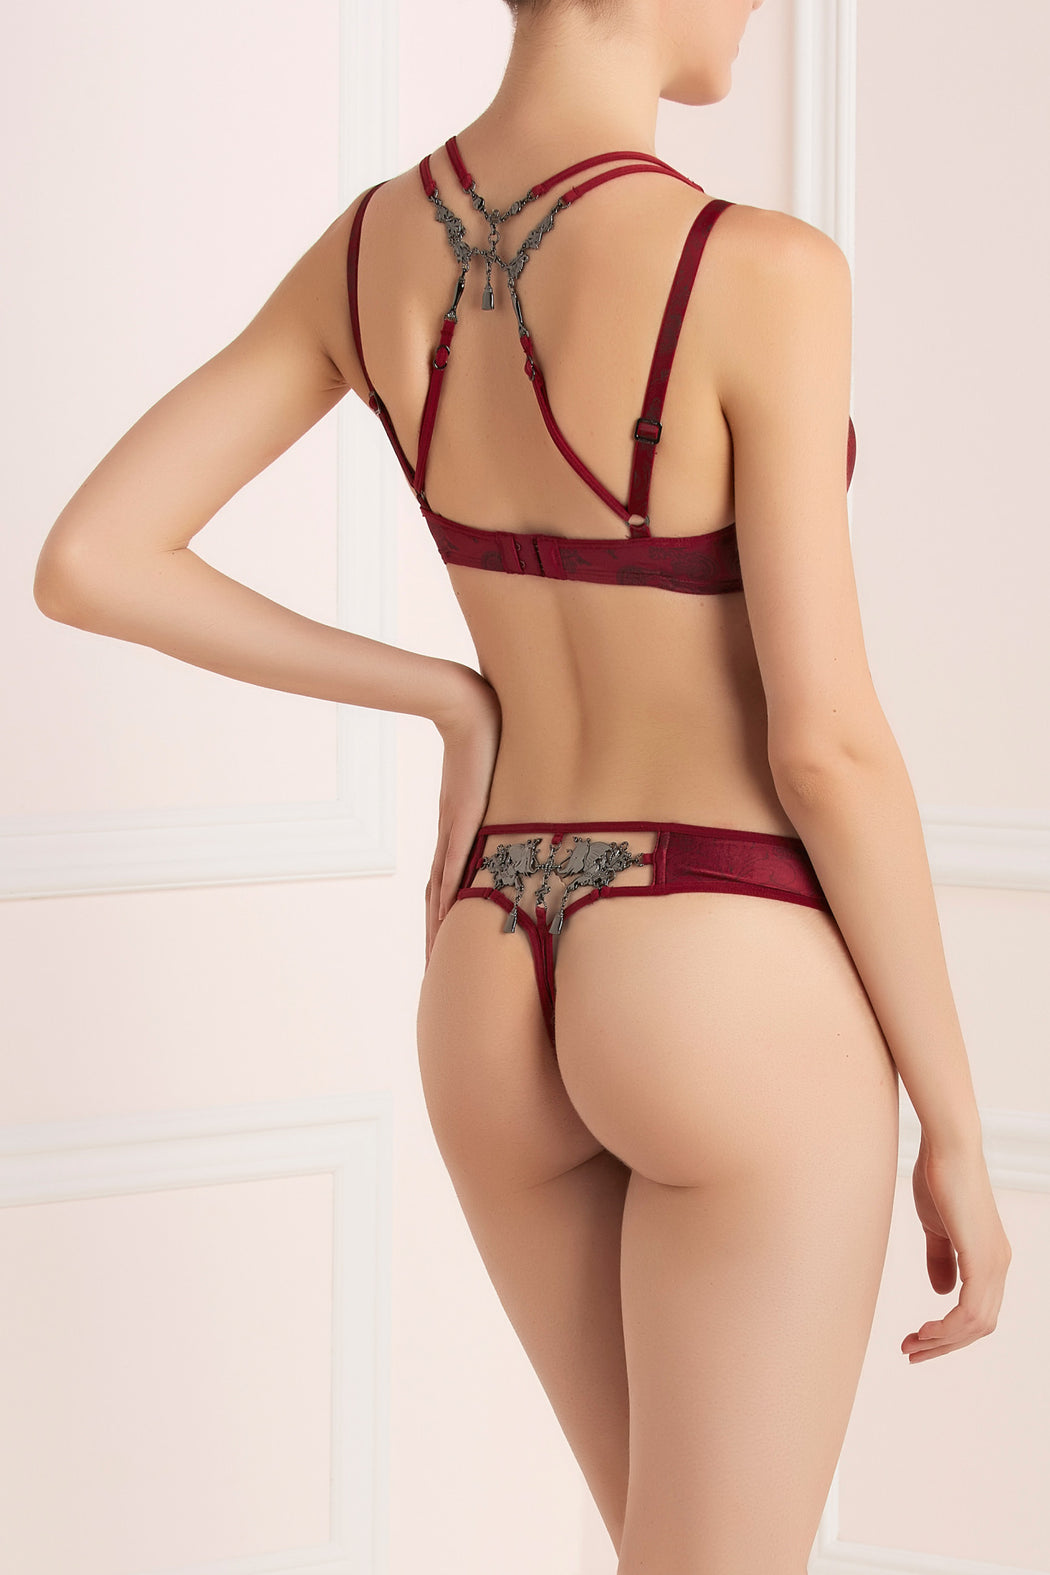 Johan red blood balcony bra by Marlies Dekkers workingirls lingerie